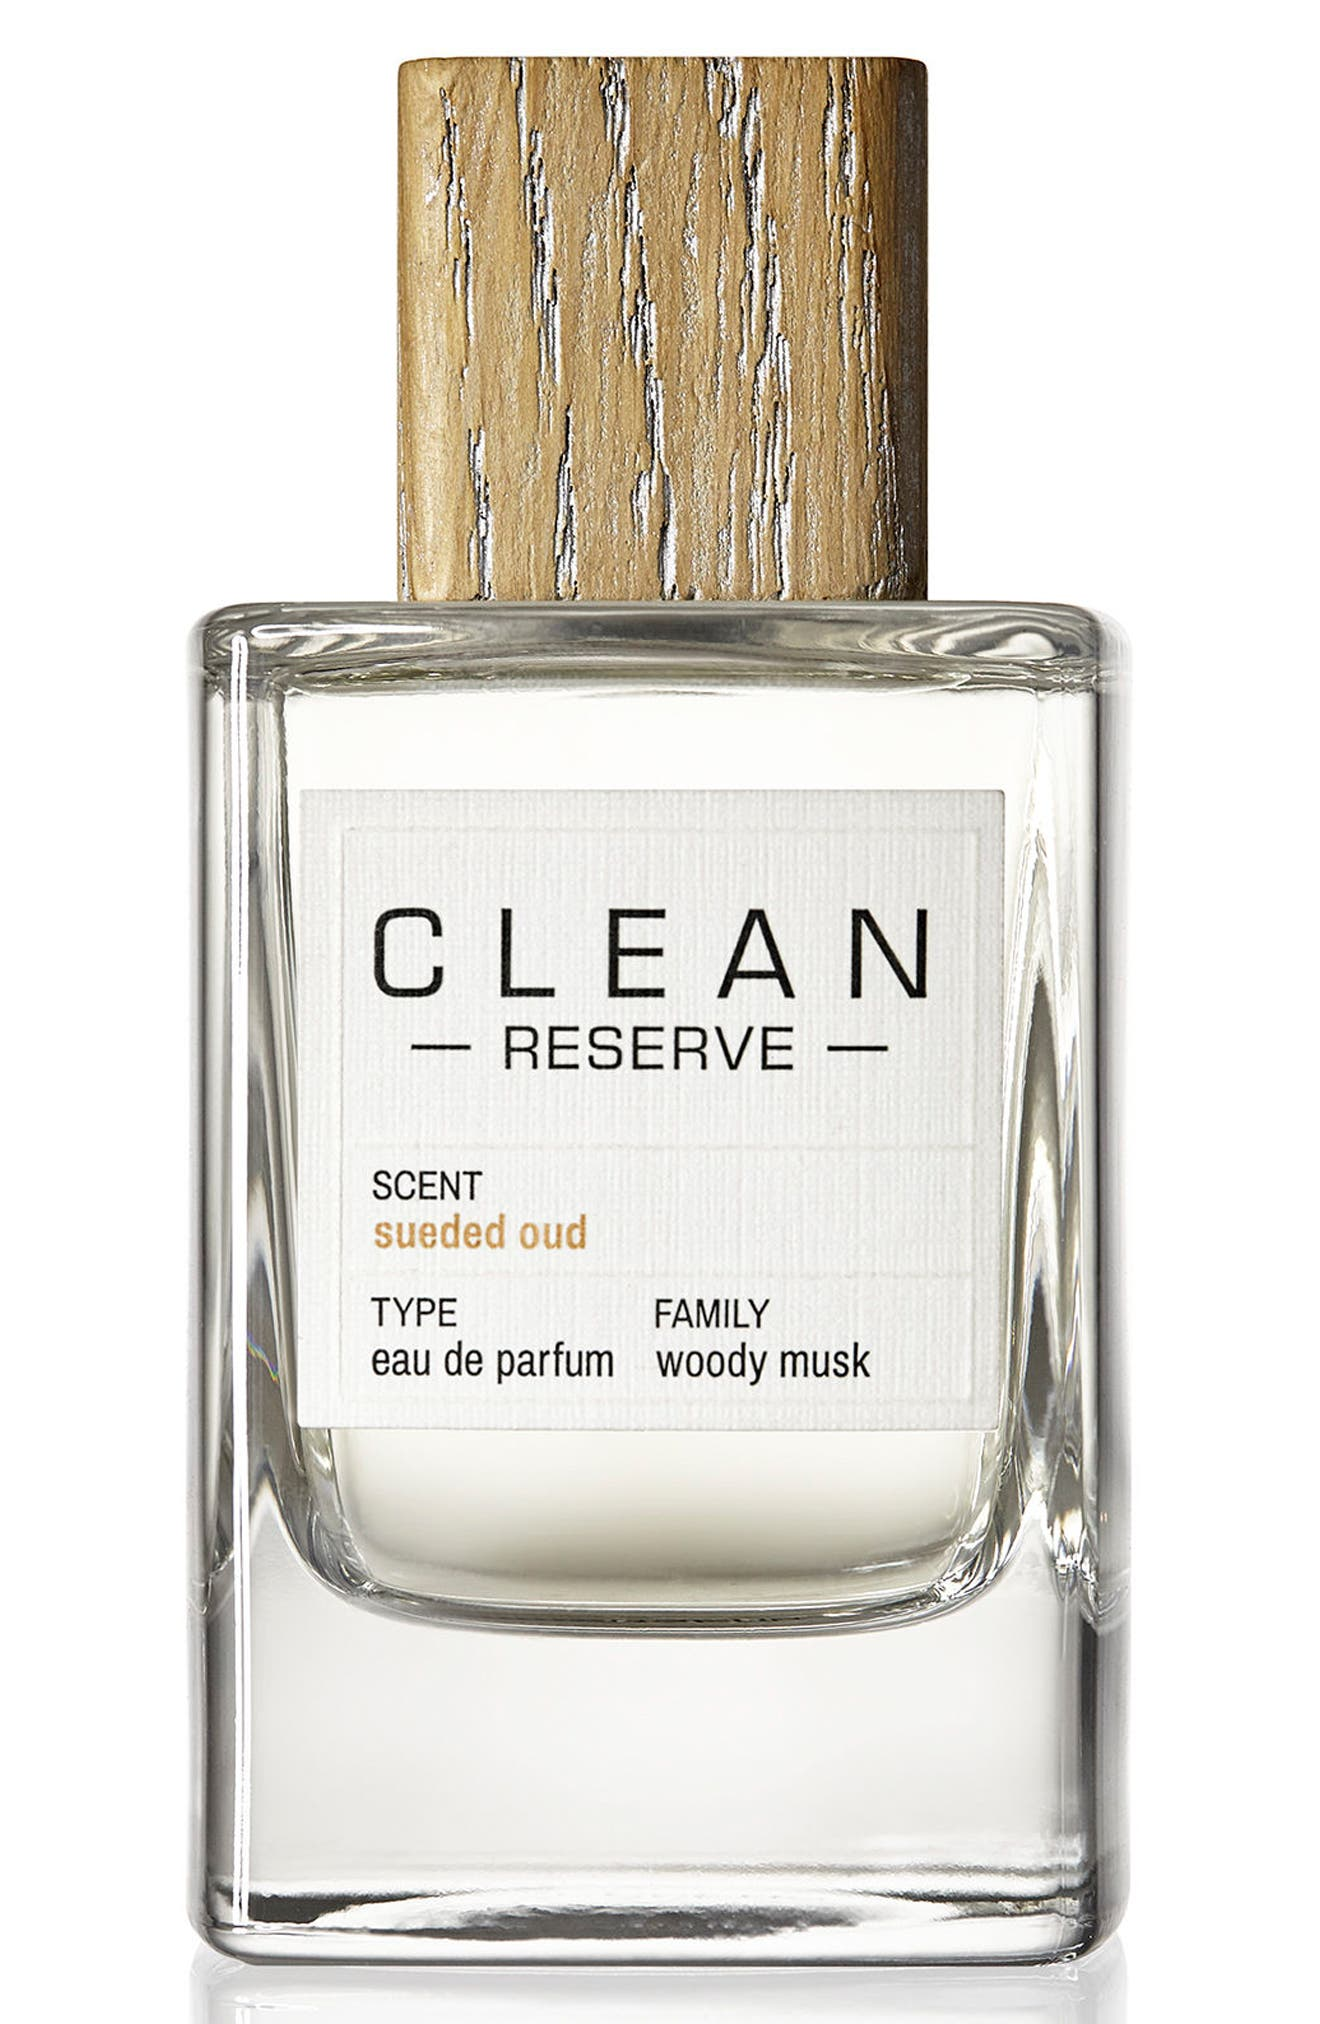 Clean Reserve Sueded Oud Eau de Parfum